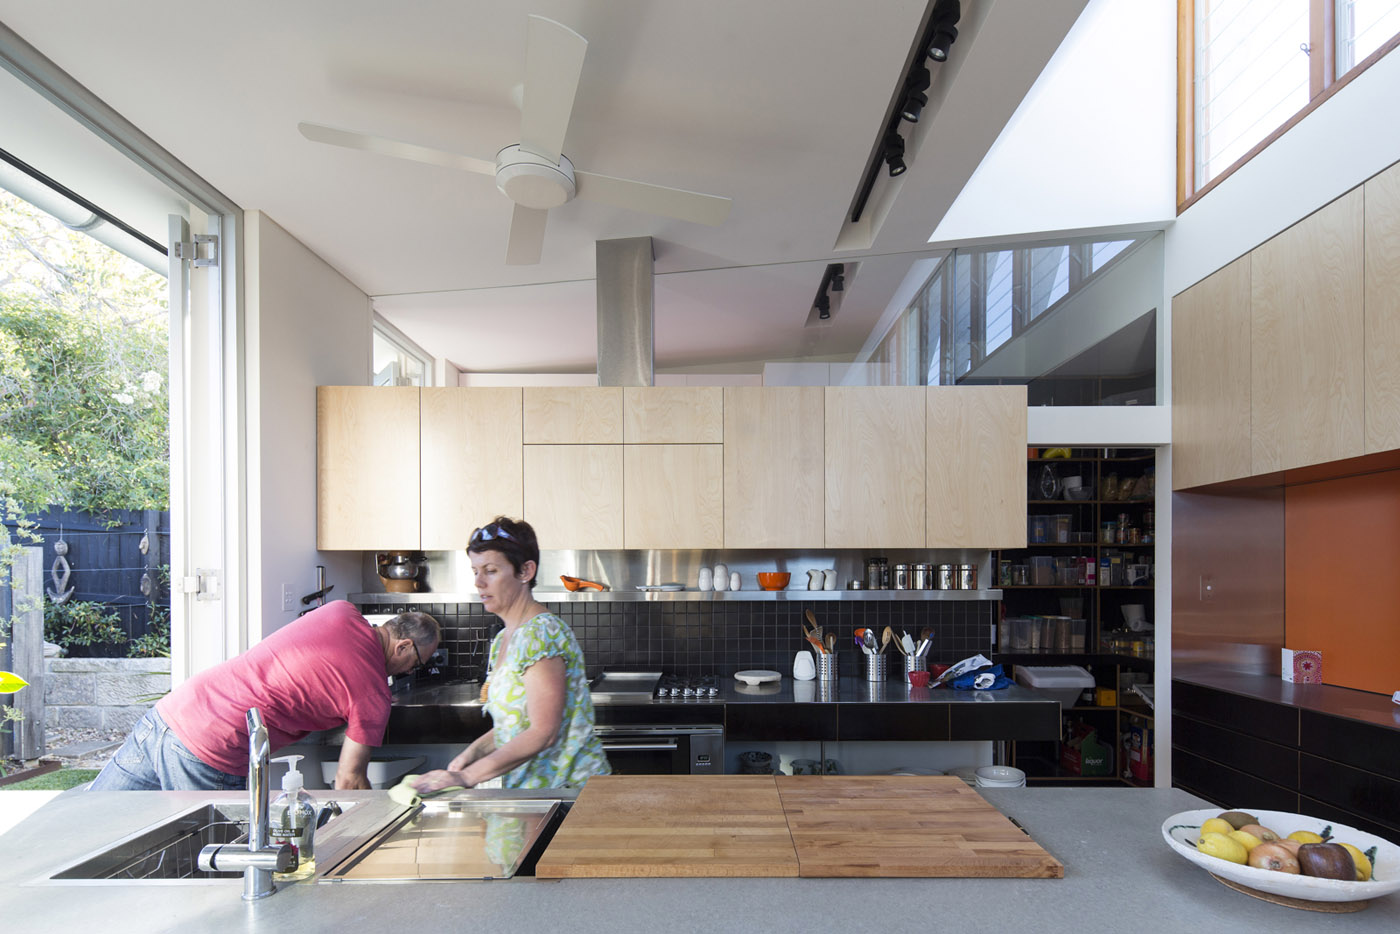 Salgo Kitching House by Sydney award winning architecture office Sam Crawford Architects. Owners preparing food in modern kitchen.